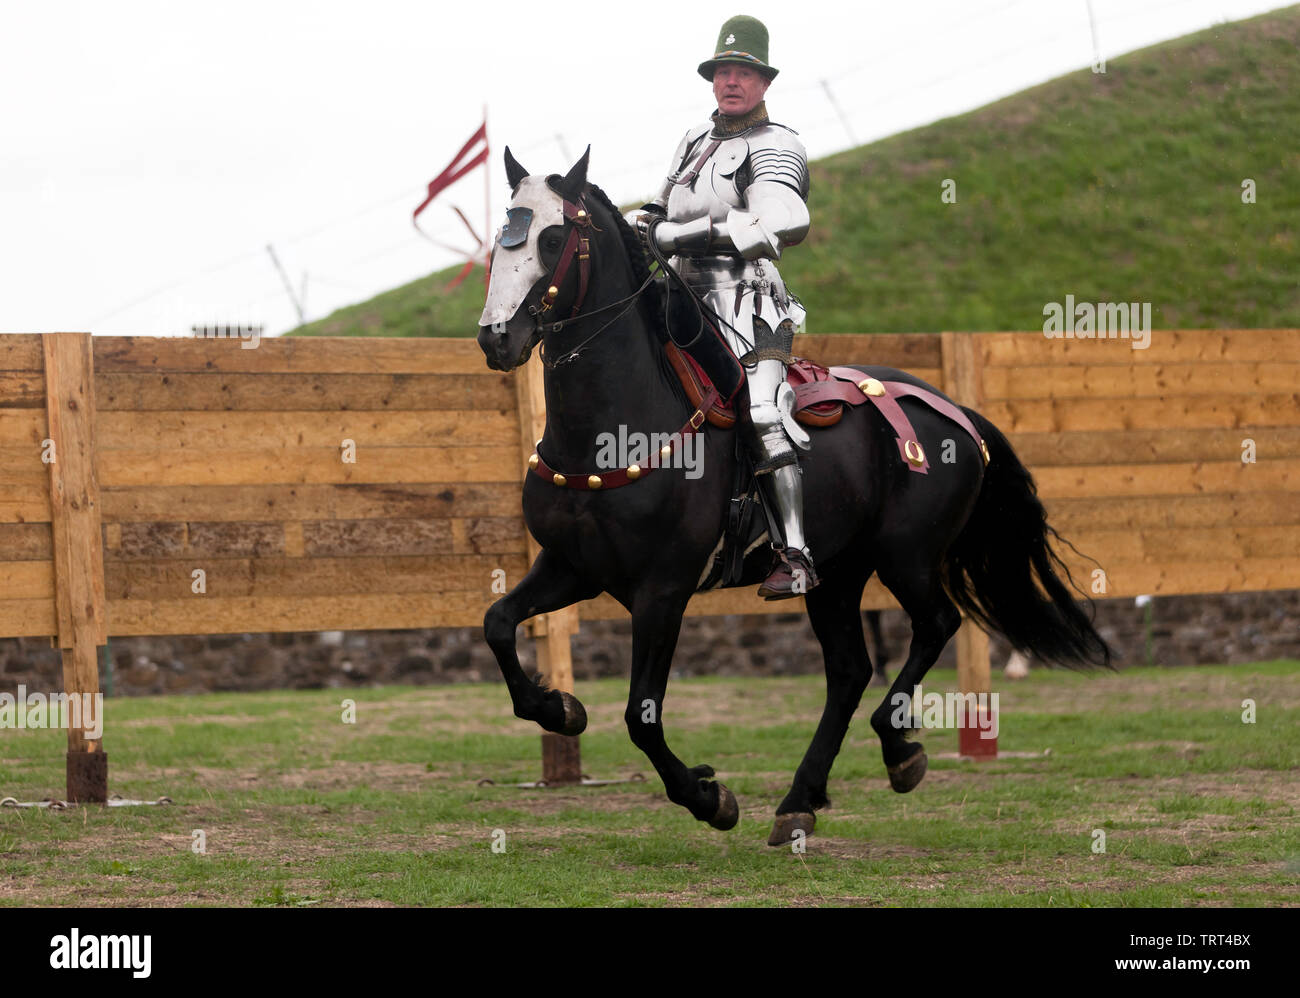 A Knight demonstrating his Horse riding skills, during an English Heritage Jousting Tournament at Dover Castle, August 2018 - Stock Image